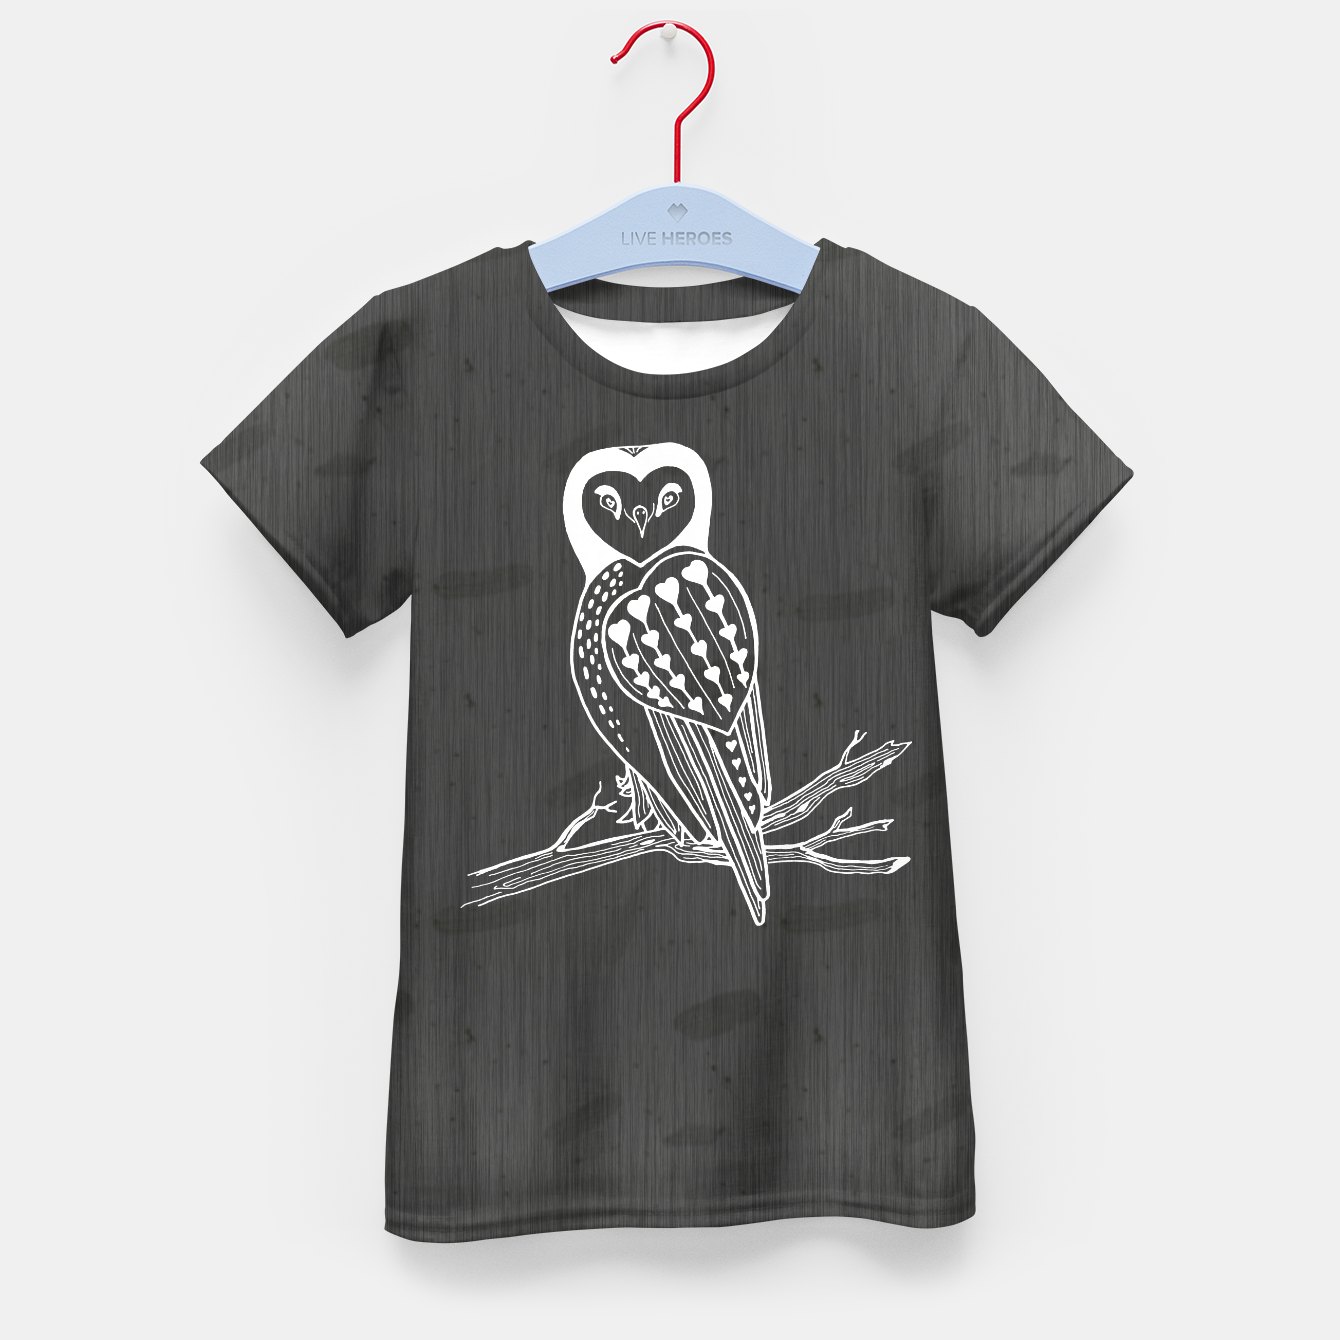 de3a6416faa Image of White Heart Owl on Branch Charcoal Grey Mottled T-Shirt - Live  Heroes